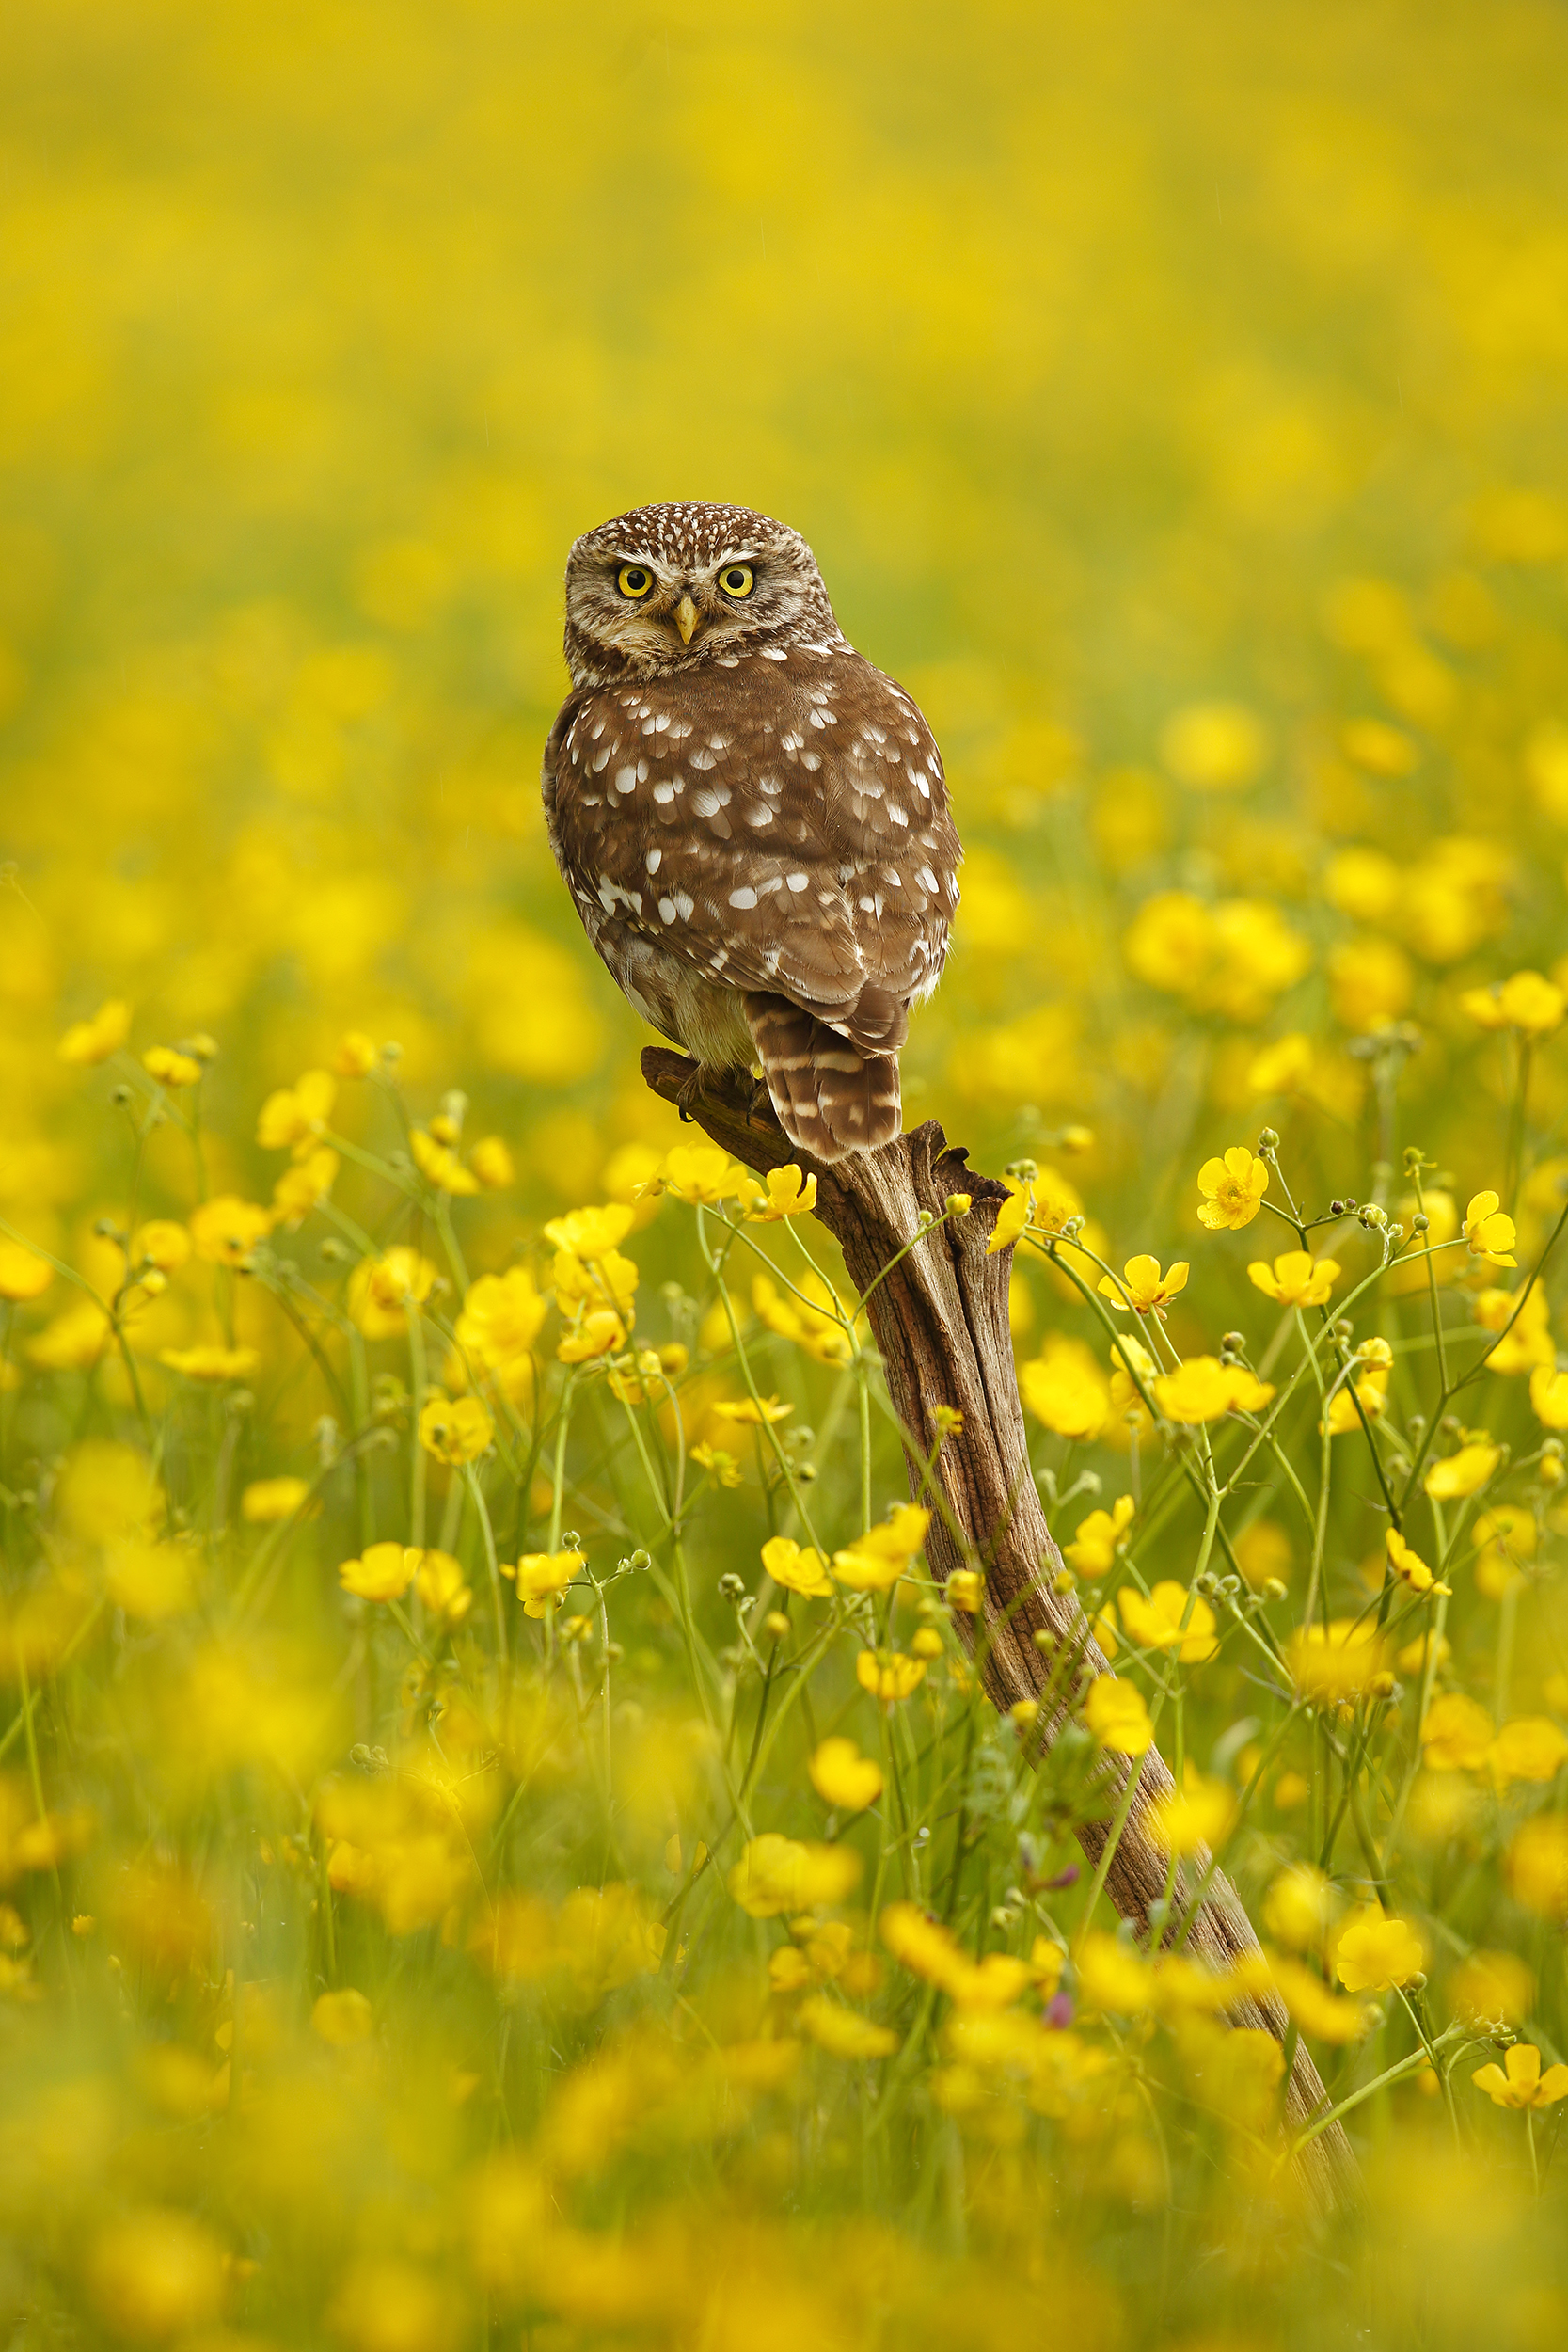 Owl_in_Buttercups.jpg